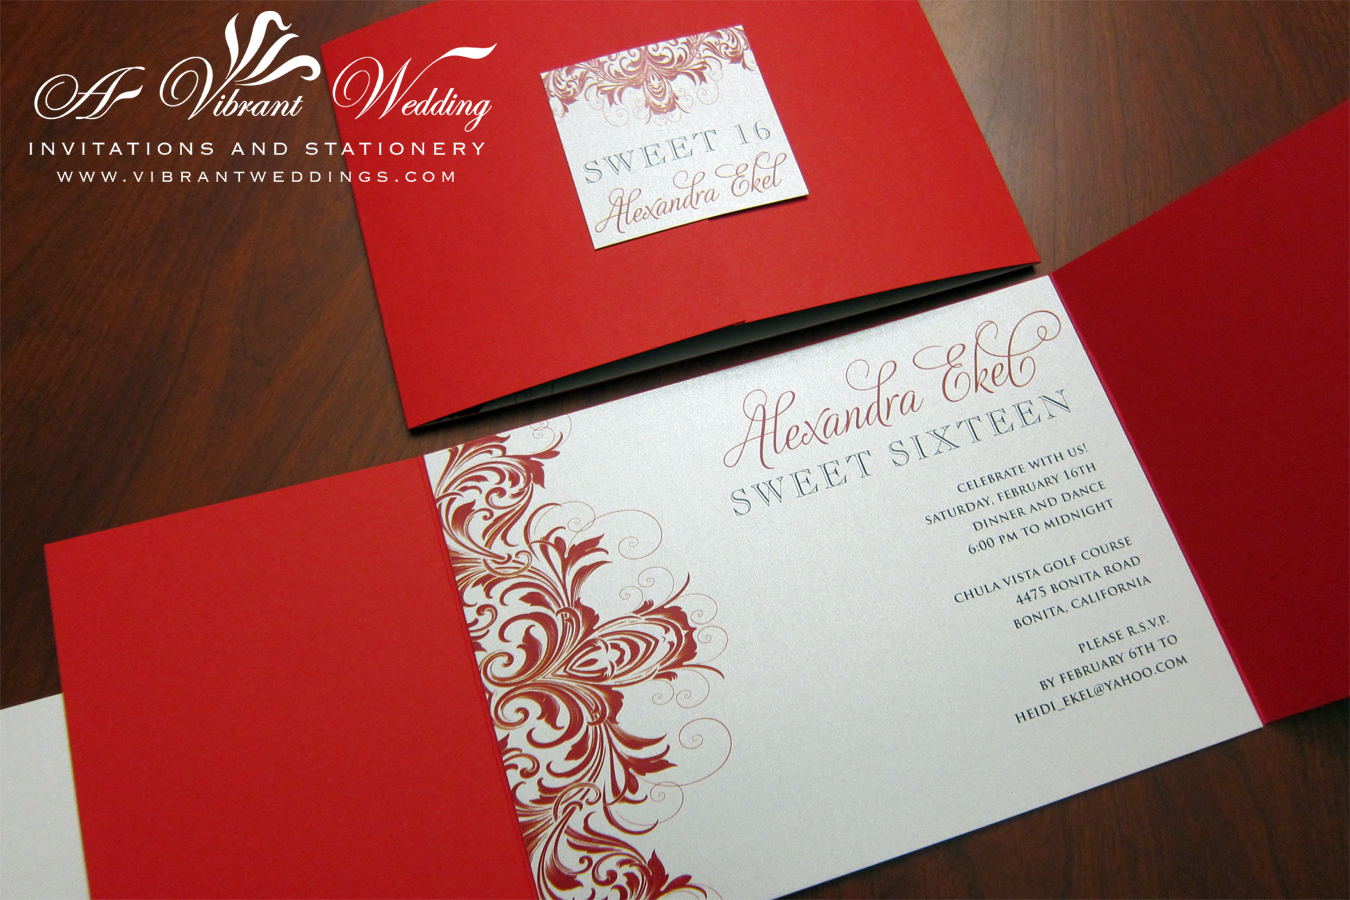 gatefold wedding invitations template - Buyu.thebangtable.co